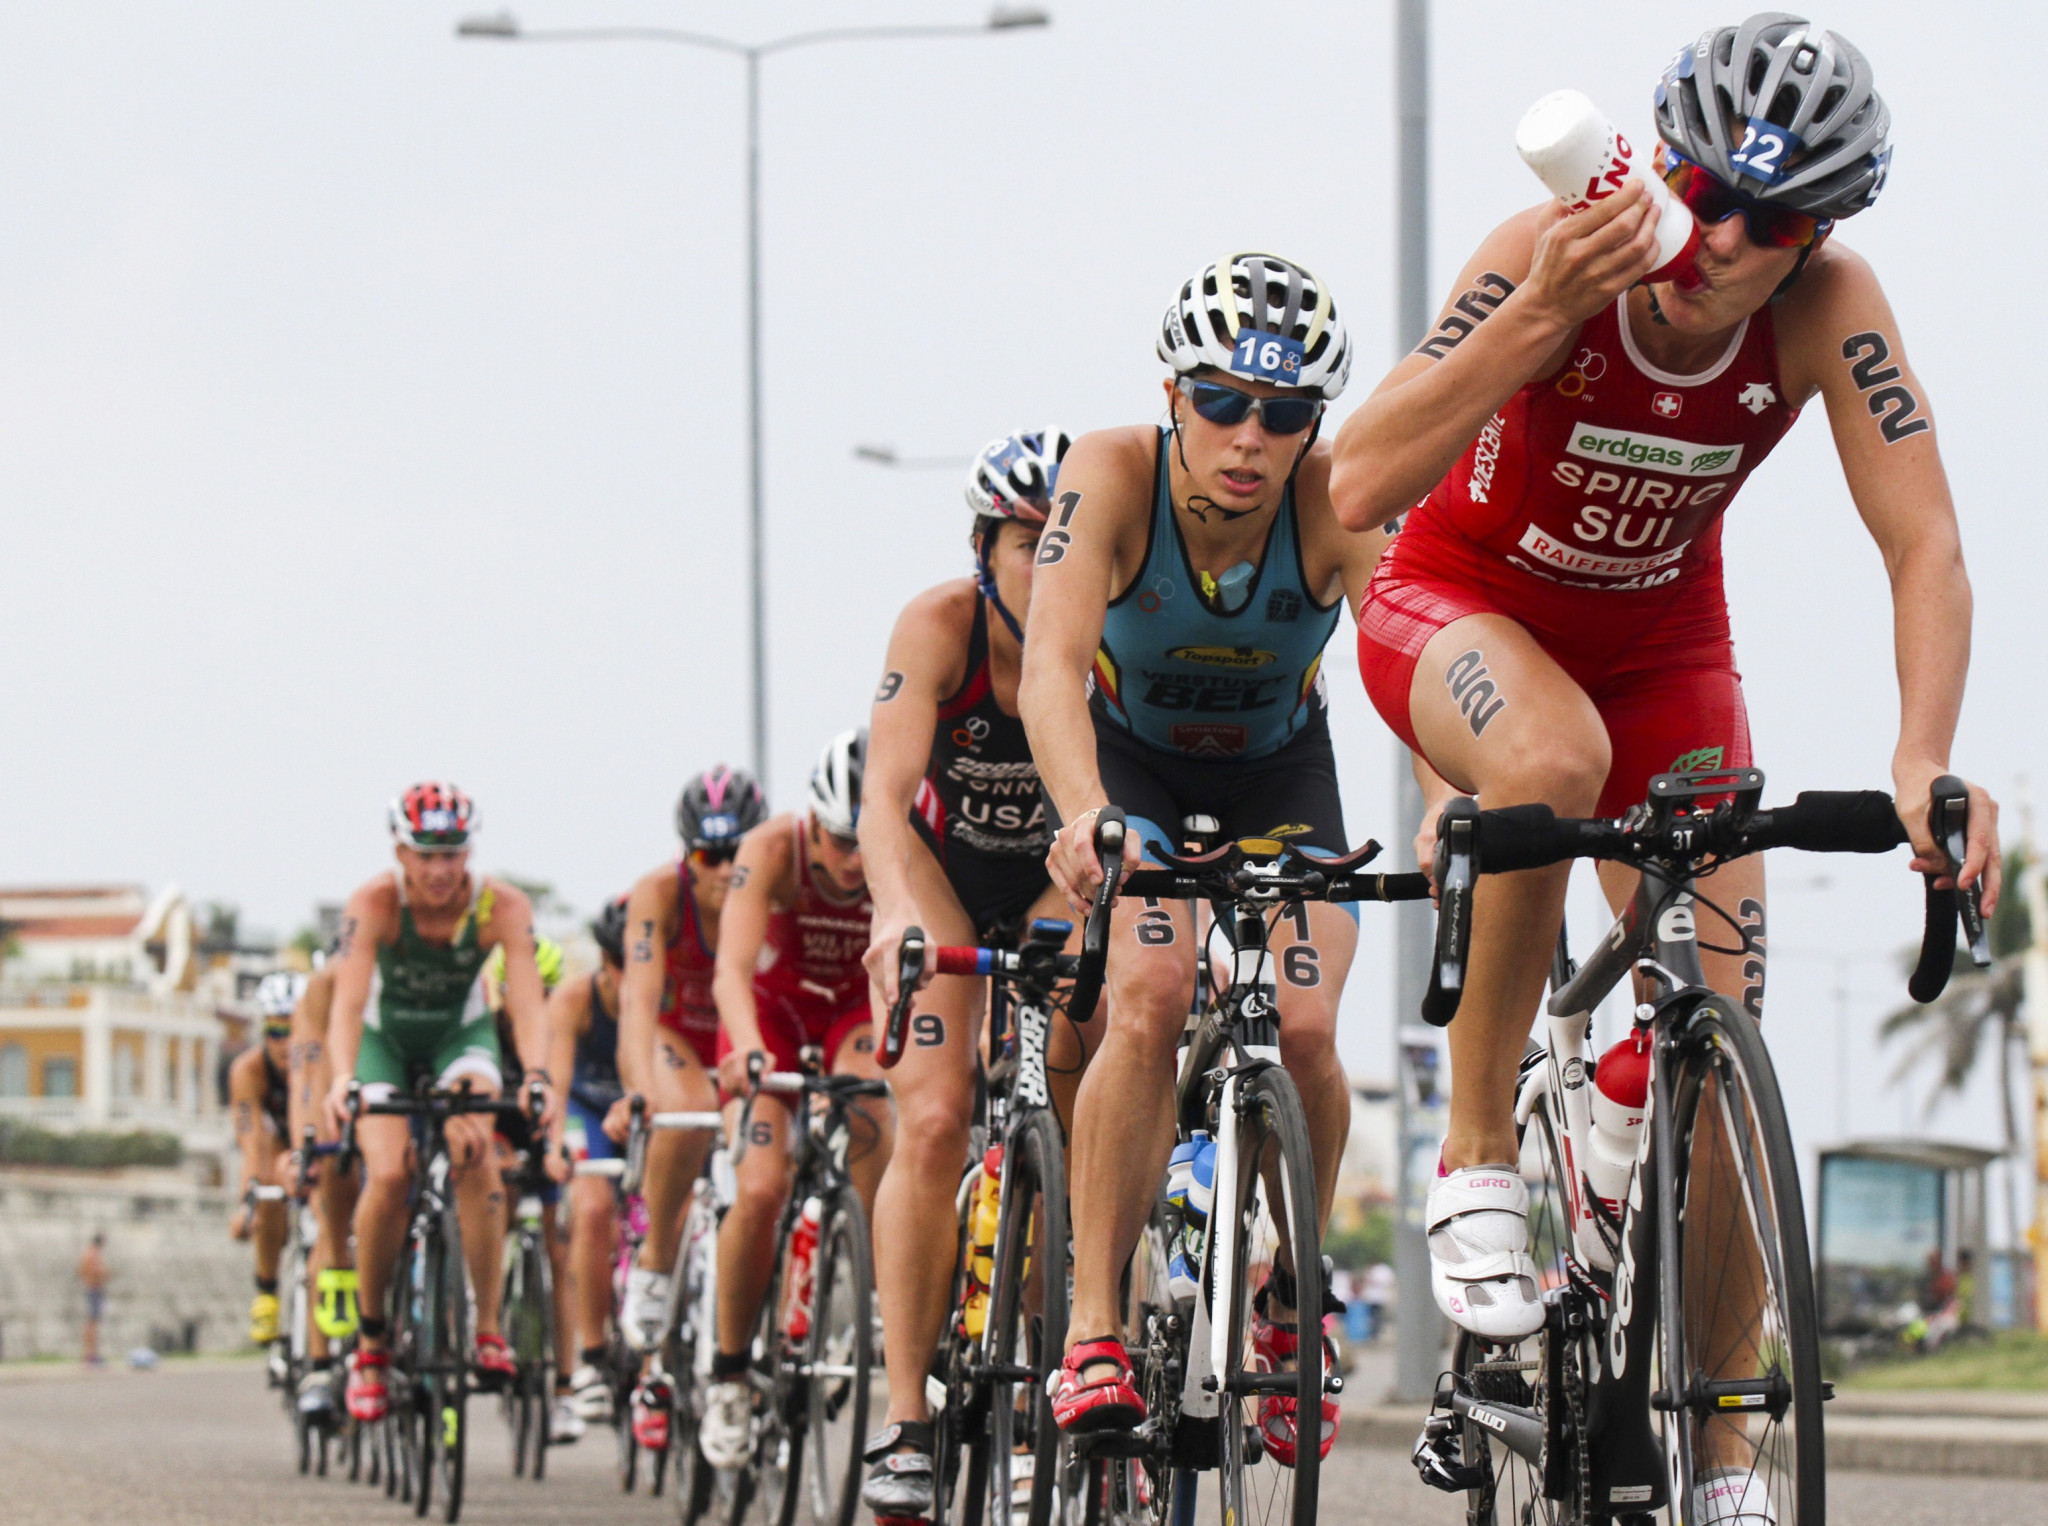 International Triathlon Union development programme targets Tokyo 2020 contenders